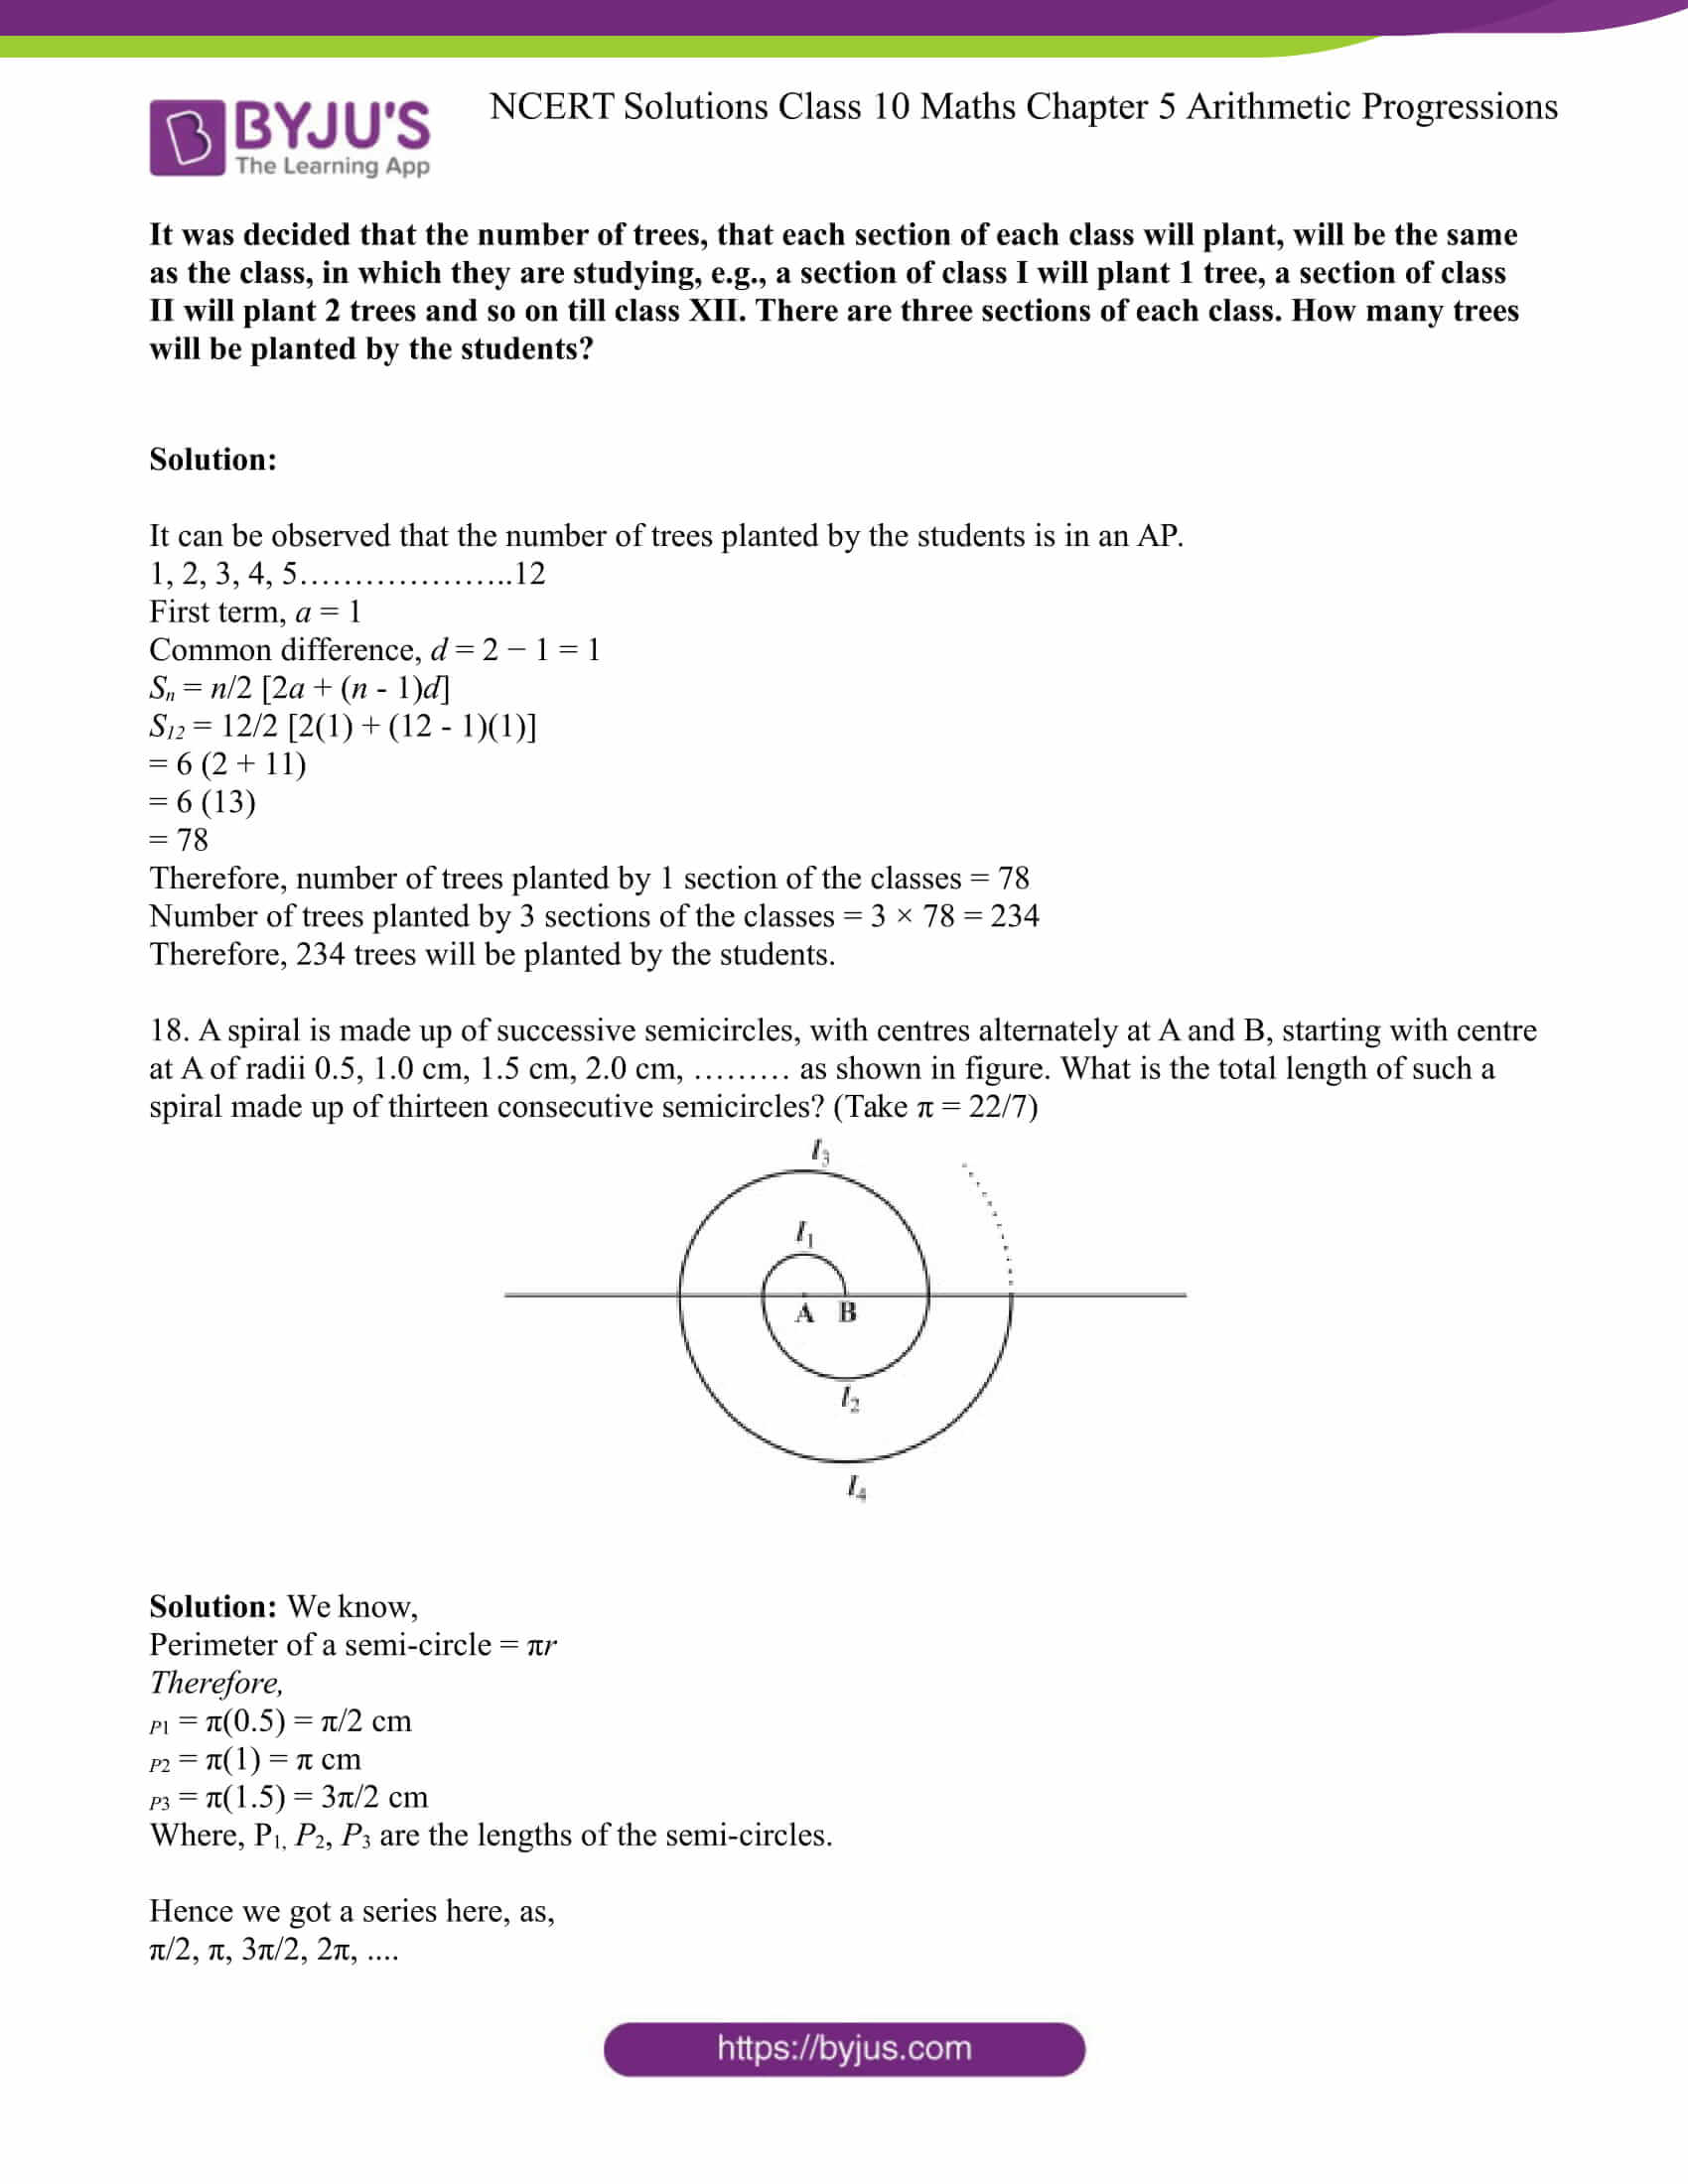 NCERT Solution for CBSE class 10 Maths Chapter 5 Arithmetic Progressions Excercise 5.3 Part 15